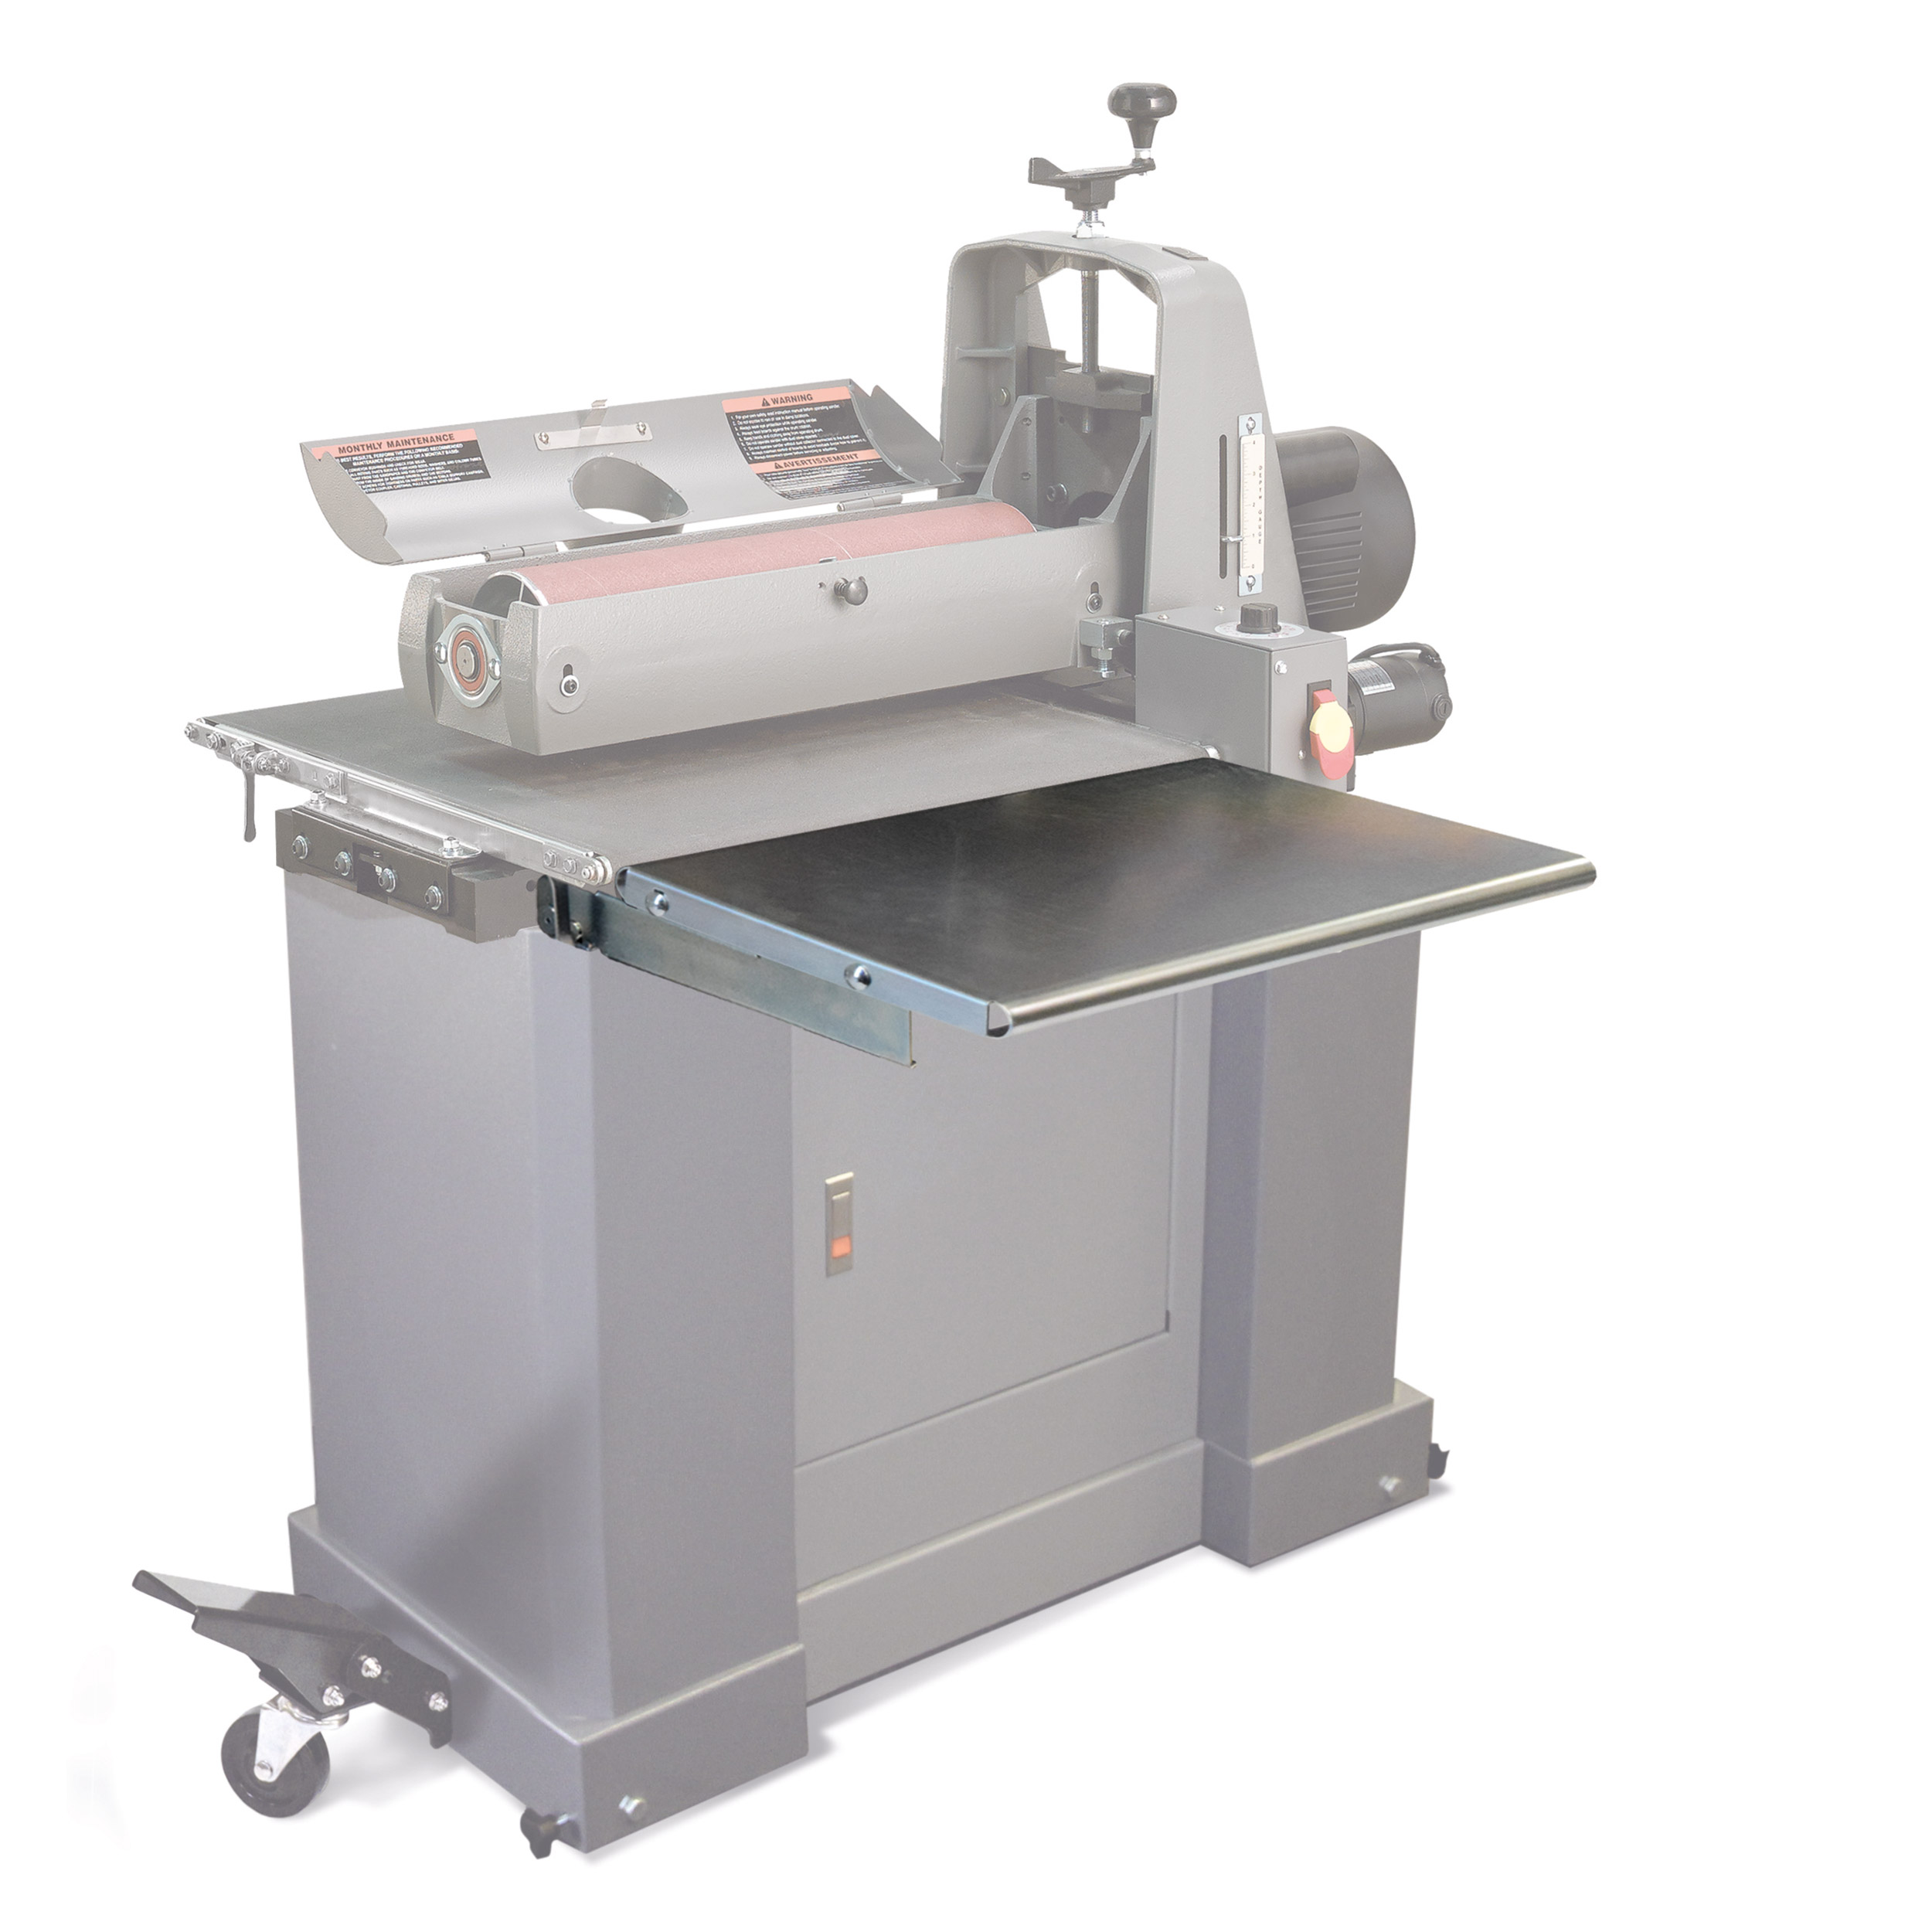 Folding Infeed/Outfeed for 25-50 SuperMax Drum Sander